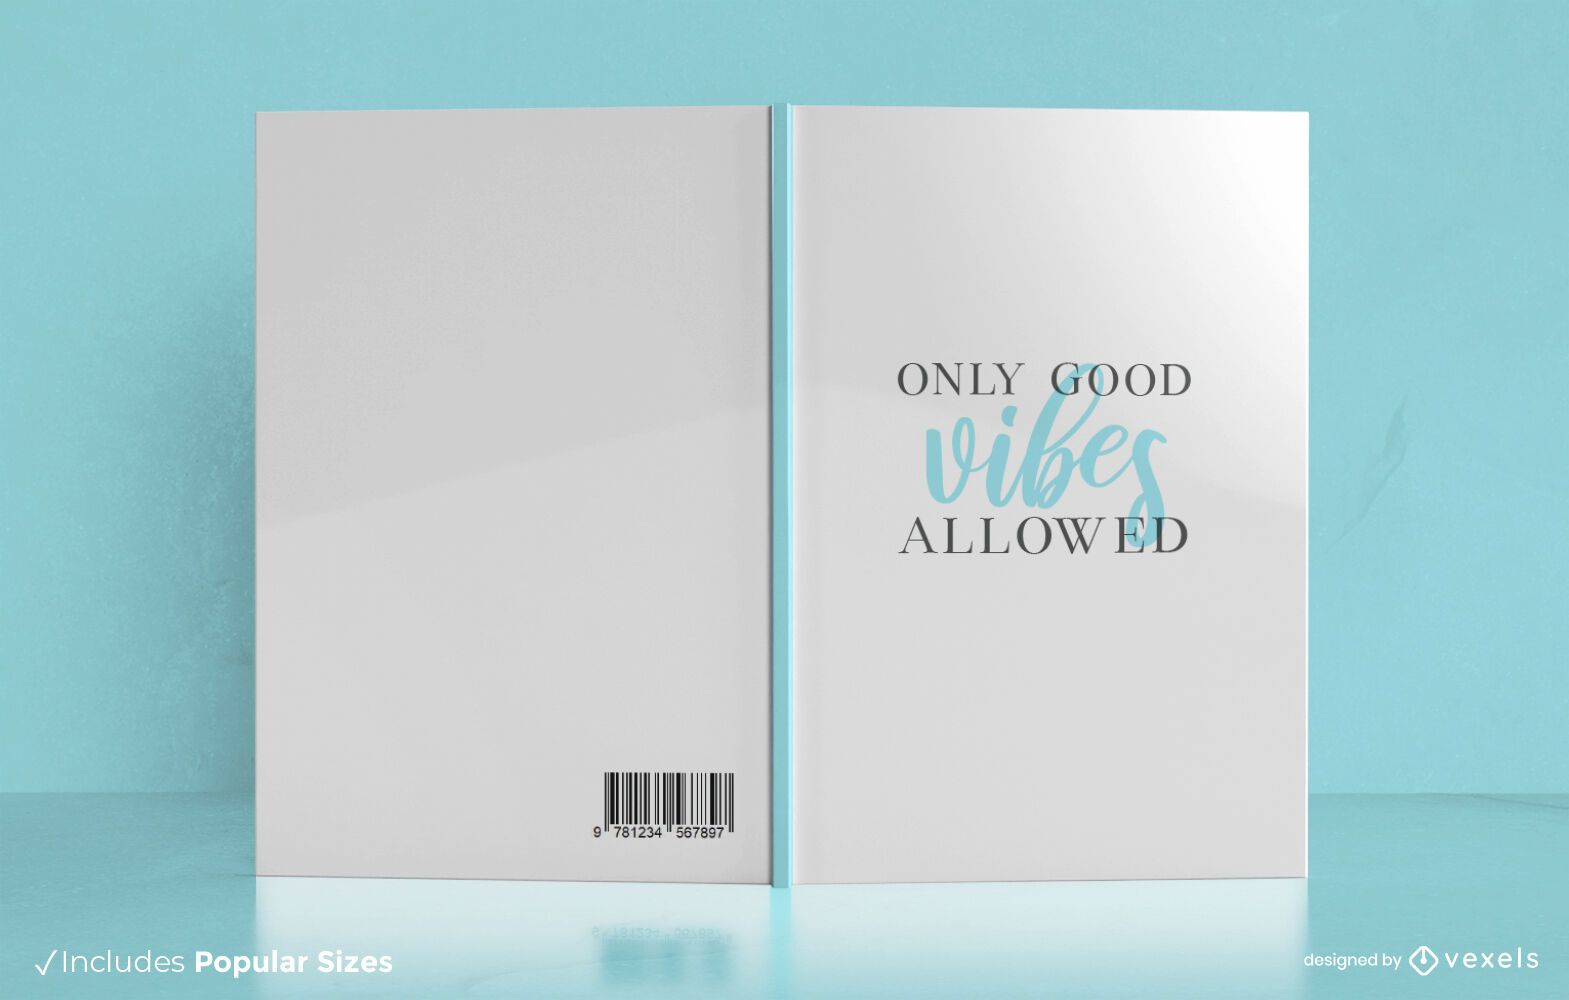 Good vibes book cover design